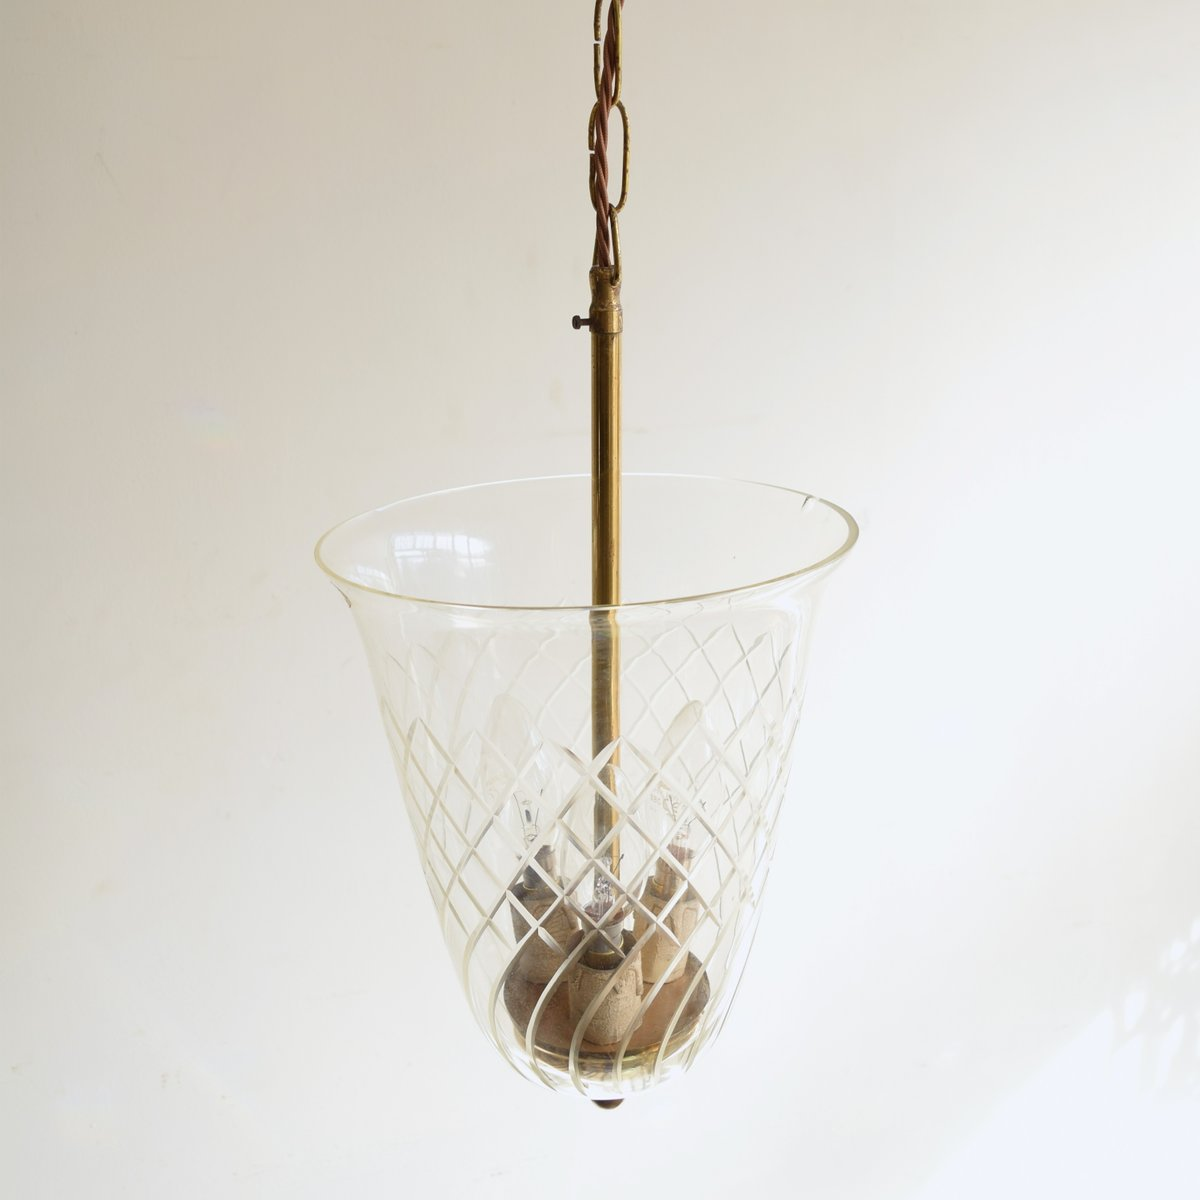 Vintage Cut Glass Pendant Lamp For Sale At Pamono